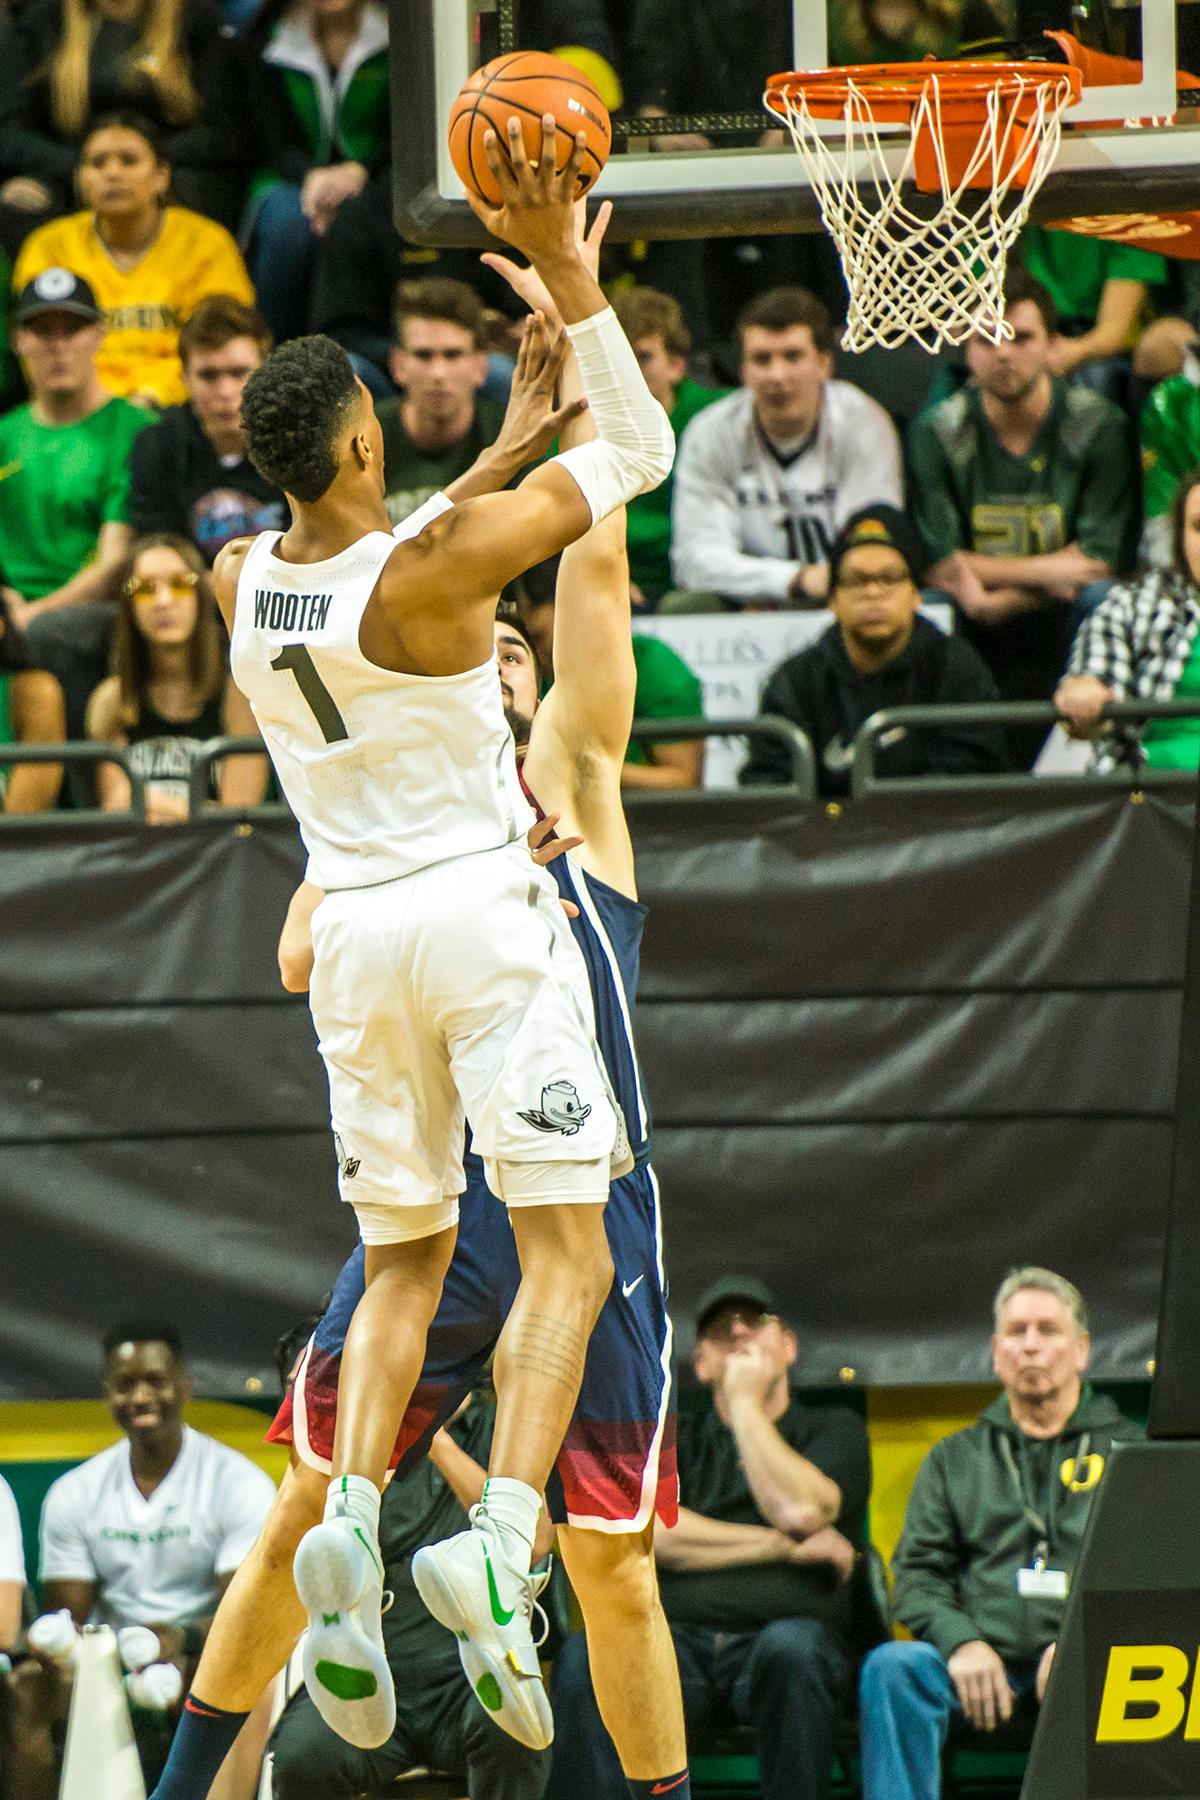 Oregon's Kenny Wooten (1) shoots over an Arizona defender in theor matchup at Matthew Knight Arena Saturday. The Ducks upset the fourteenth ranked Wildcats 98-93 in a stunning overtime win in front of a packed house of over 12,000 fans for their final home game to improve to a 19-10 (9-7 PAC-12) record on the season. Oregon will finish out regular season play on the road in Washington next week against Washington State on Thursday, then Washington on the following Saturday. (Photo by Colin Houck)